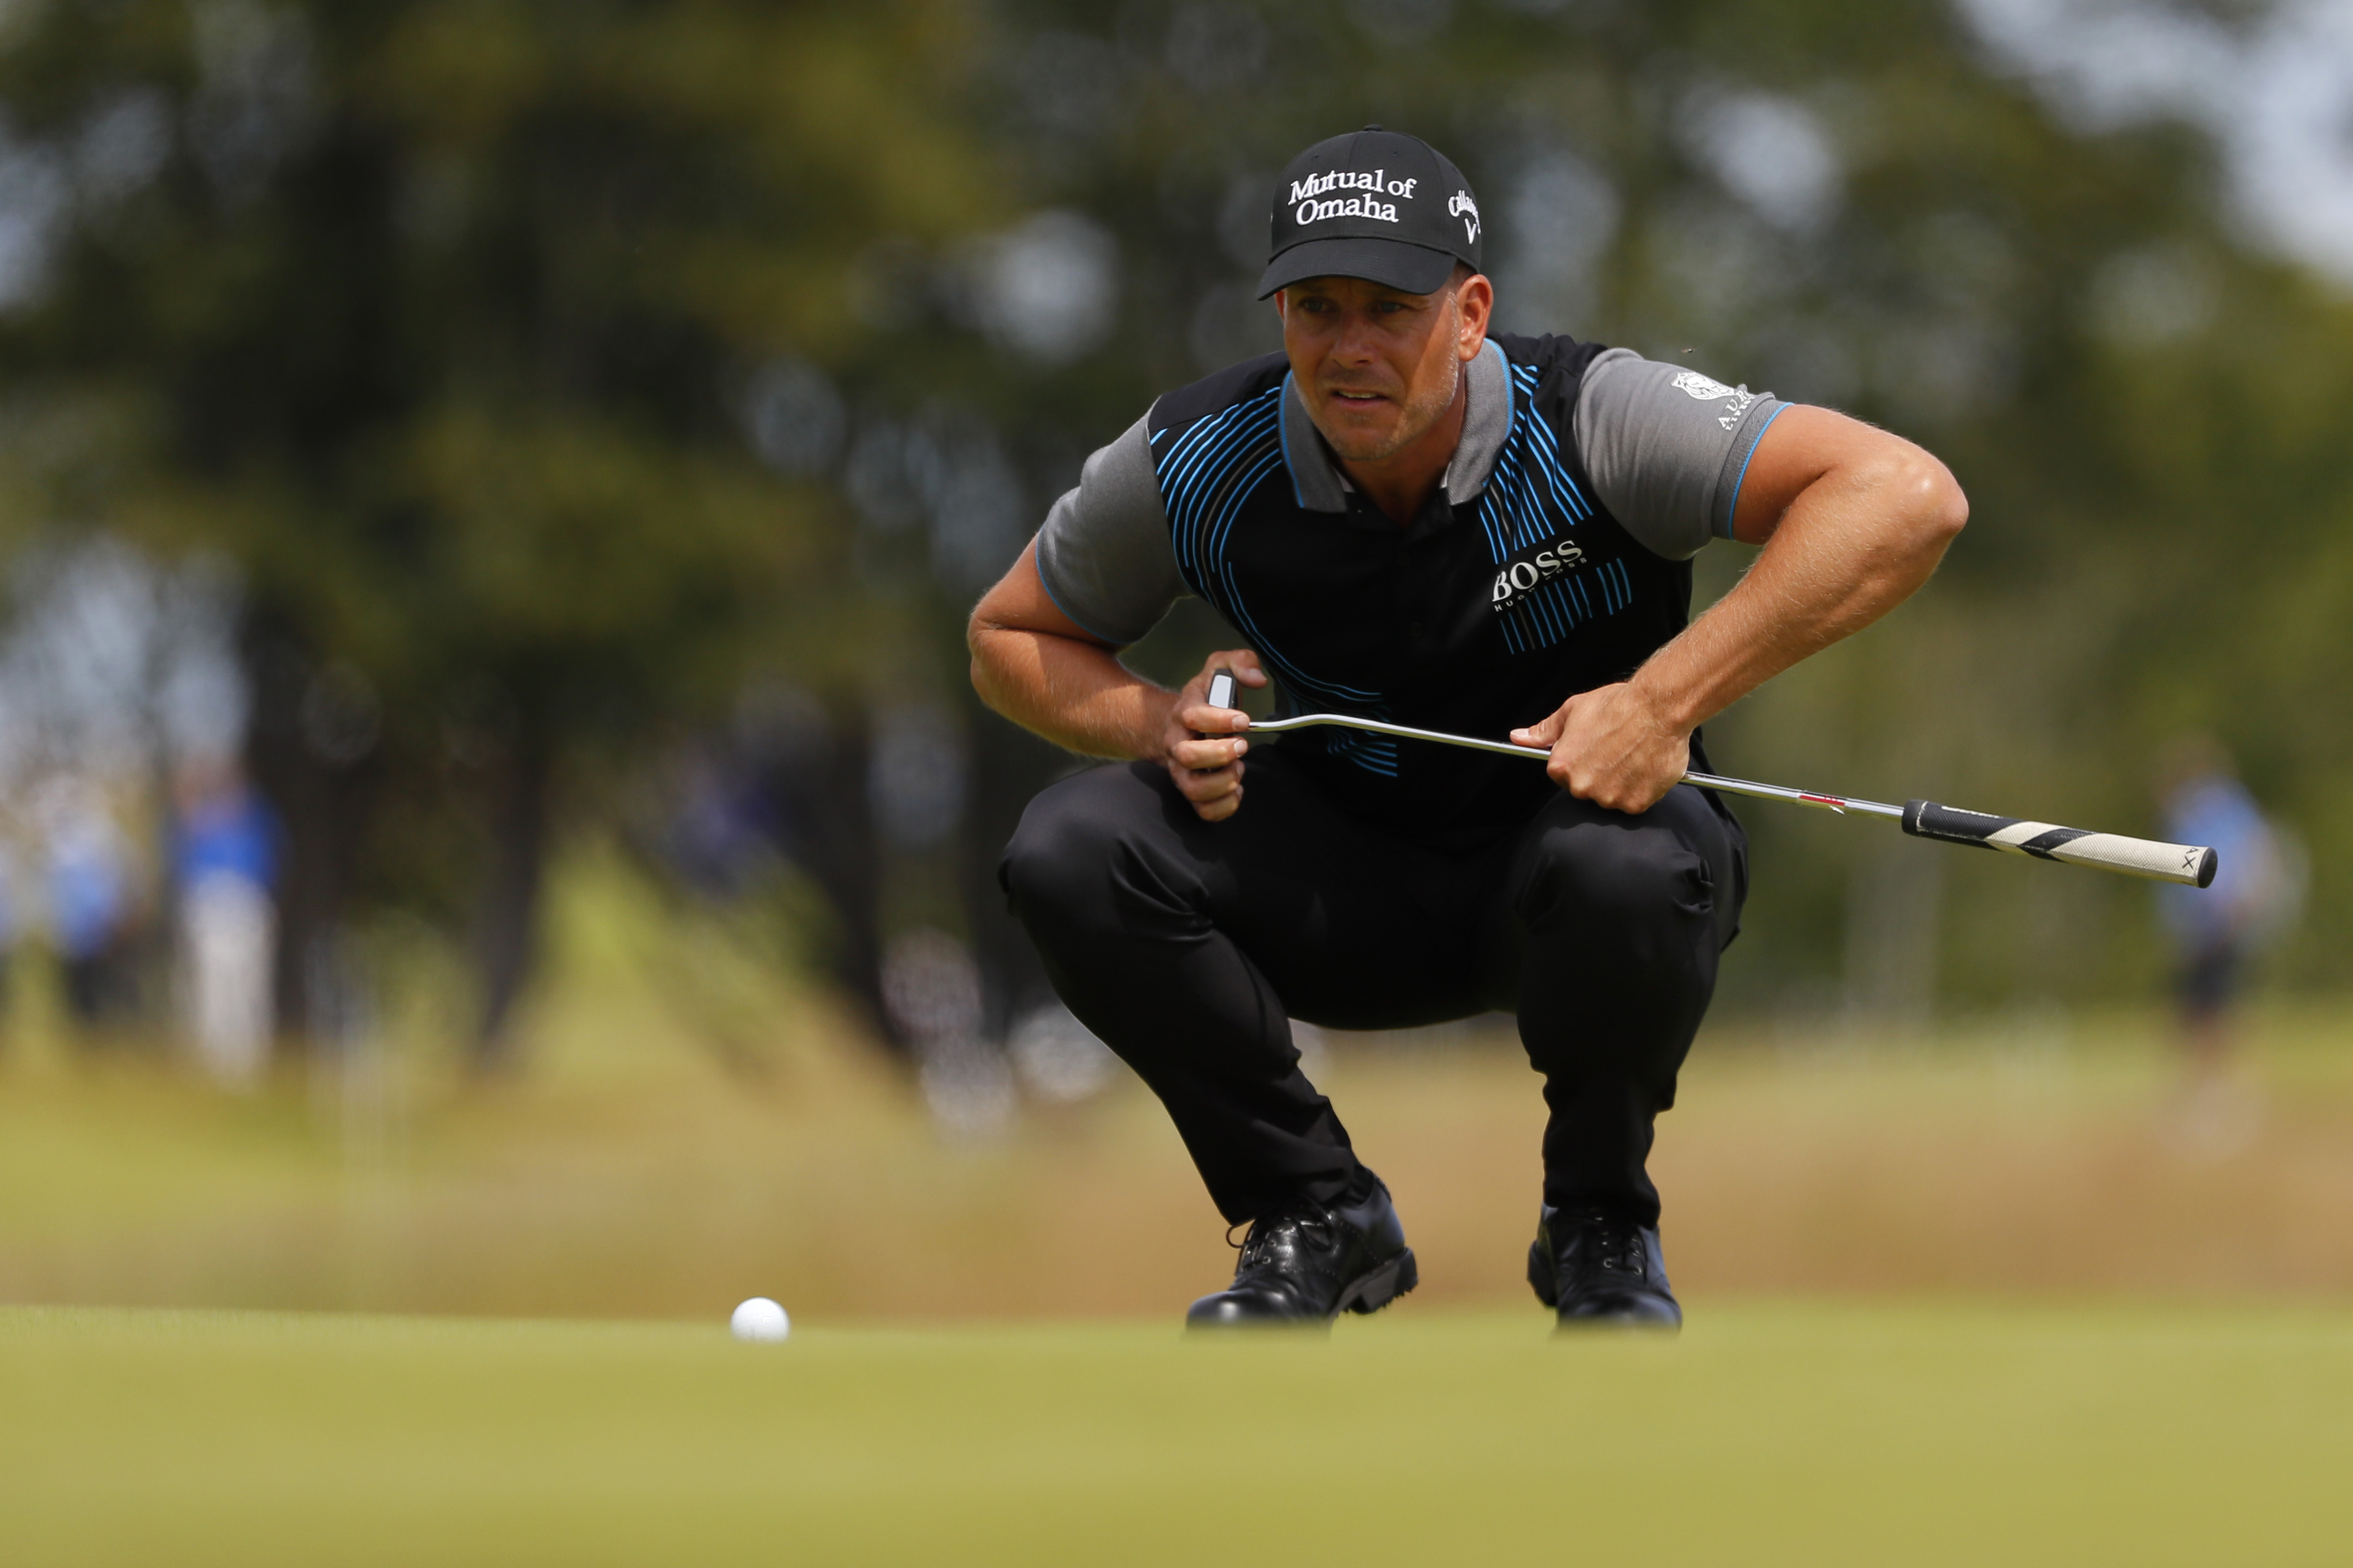 Henrik Stenson of Sweden putts on the 9th hole during day 1 of the Aberdeen Standard Investments Scottish Open at The Renaissance Club.  (Photo by Kevin C. Cox/Getty Images)